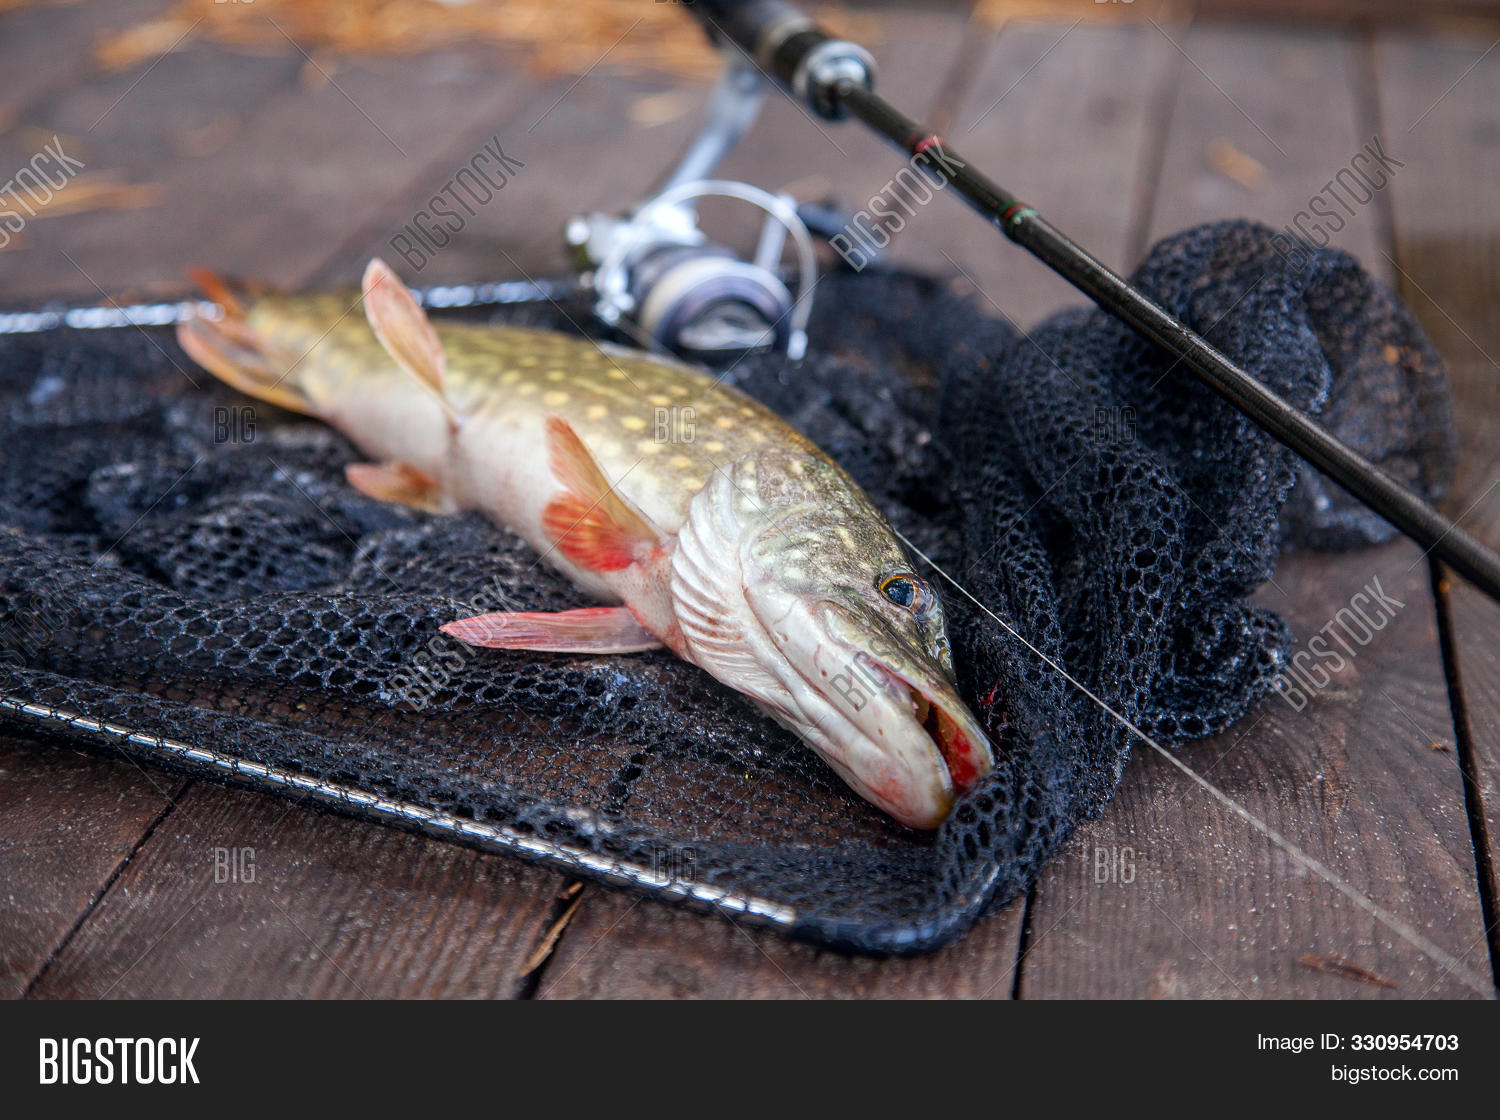 activity,angling,animal,autumn,big,catch,equipment,esox,fish,fishing,freshwater,head,hobby,leisure,lucius,lure,natural,nature,northern,outdoor,pike,predator,raw,river,scales,season,sport,trophy,water,wild,wildlife,wooden